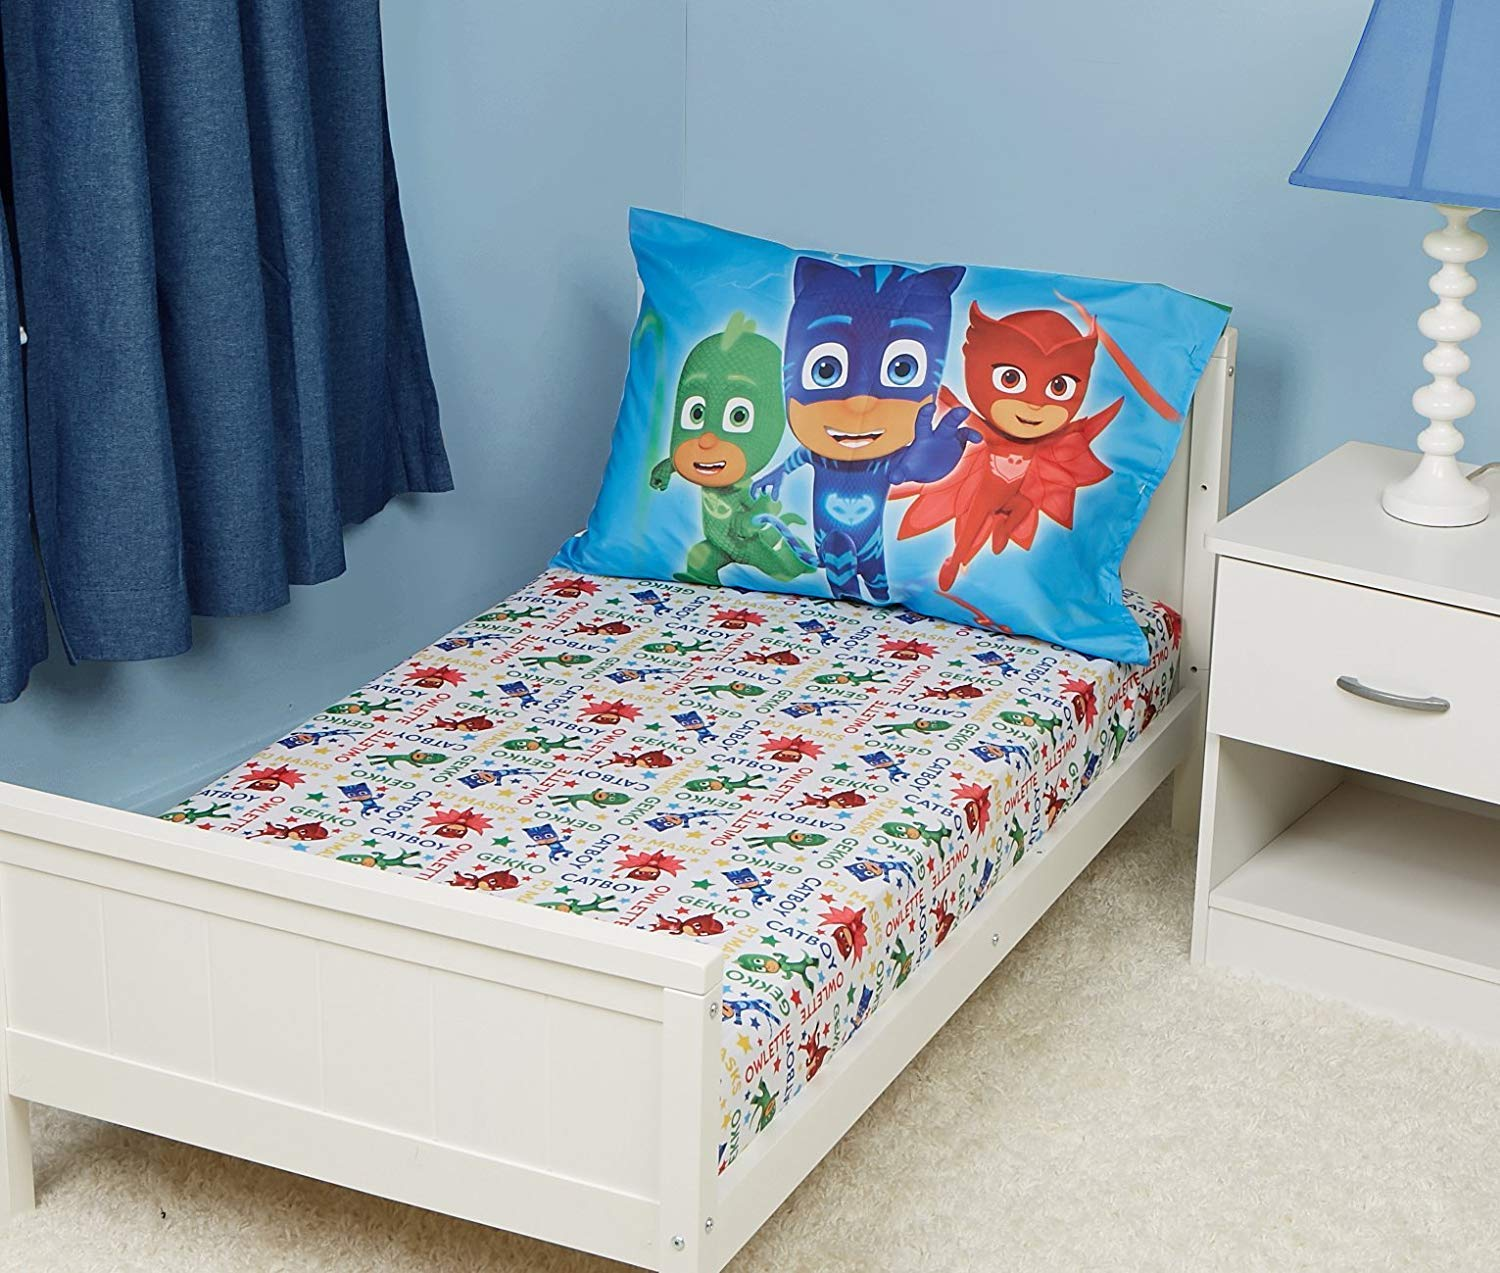 EVERYDAY KIDS PJ Masks Toddler Fitted Sheet and Pillow Case Set Fits Toddler Bed